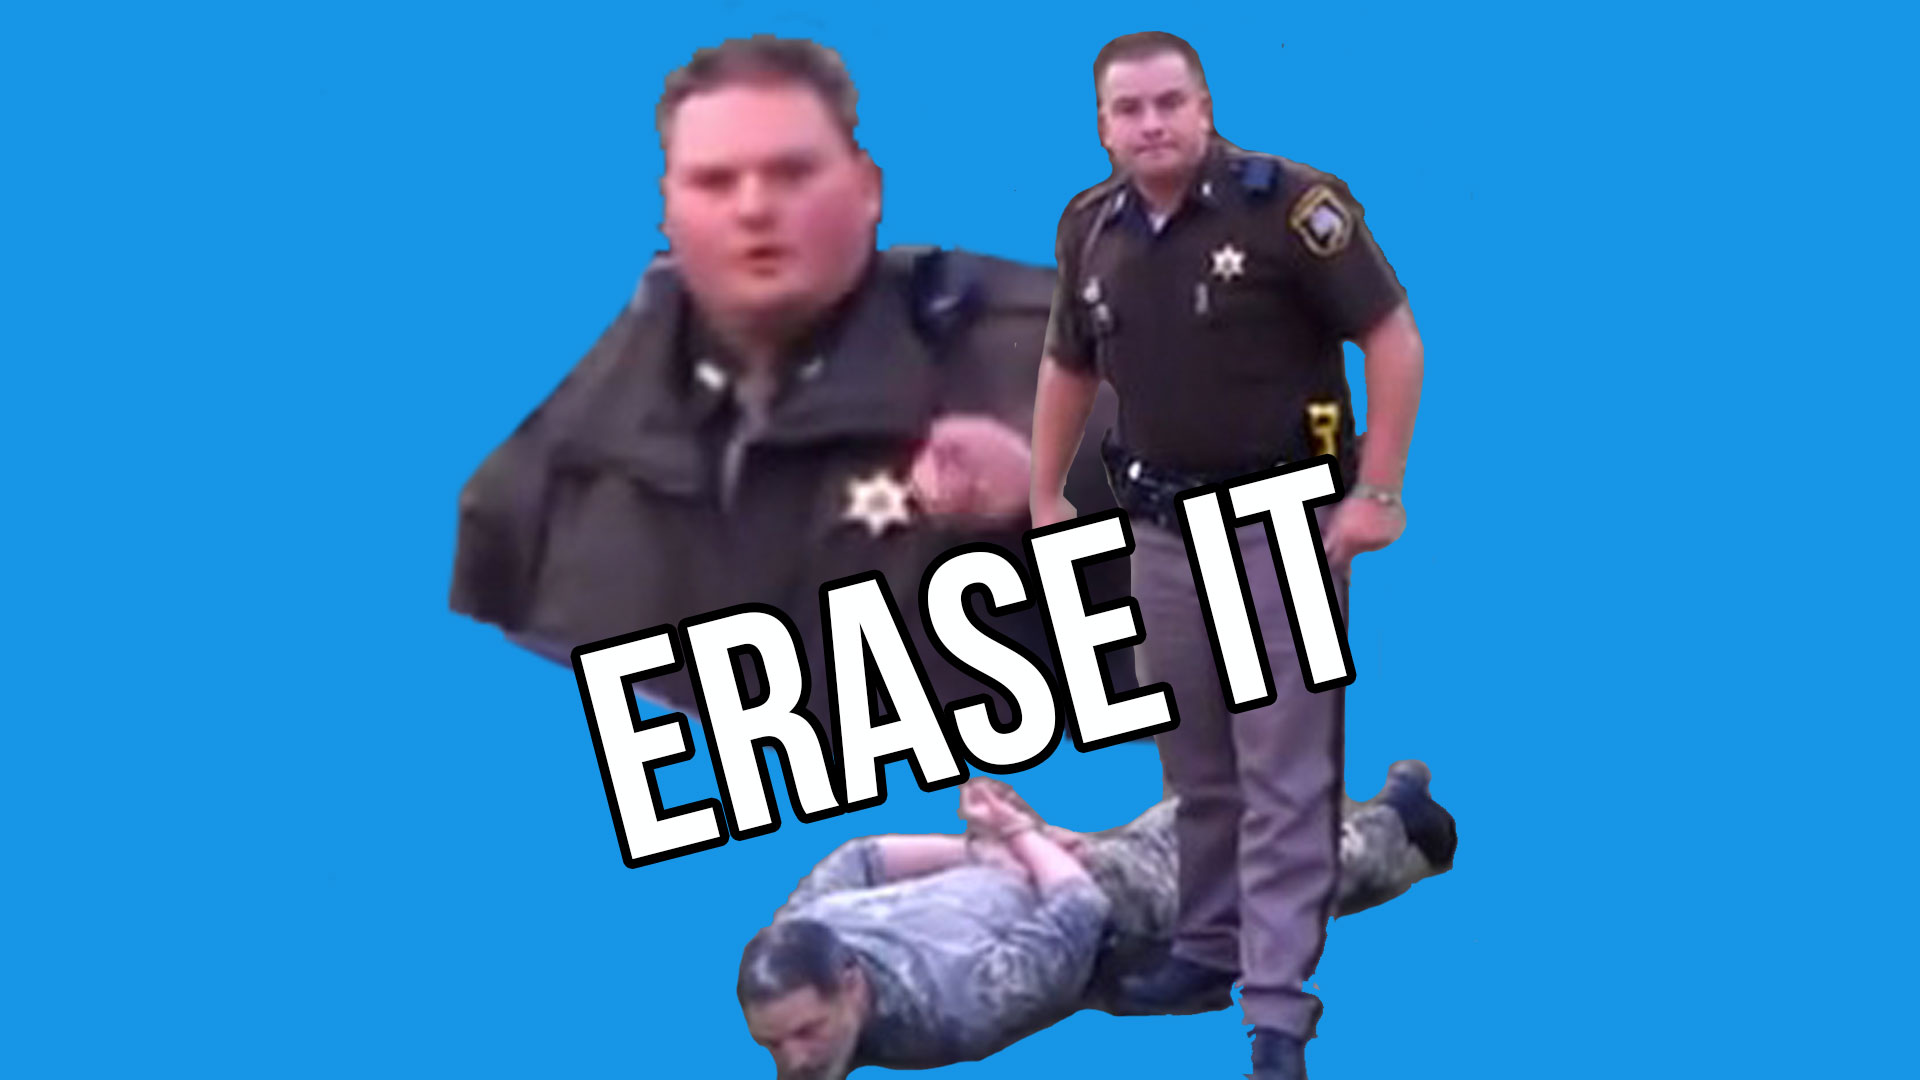 PNN-218-Cops-Force-Woman-to-Delete-Video-snas